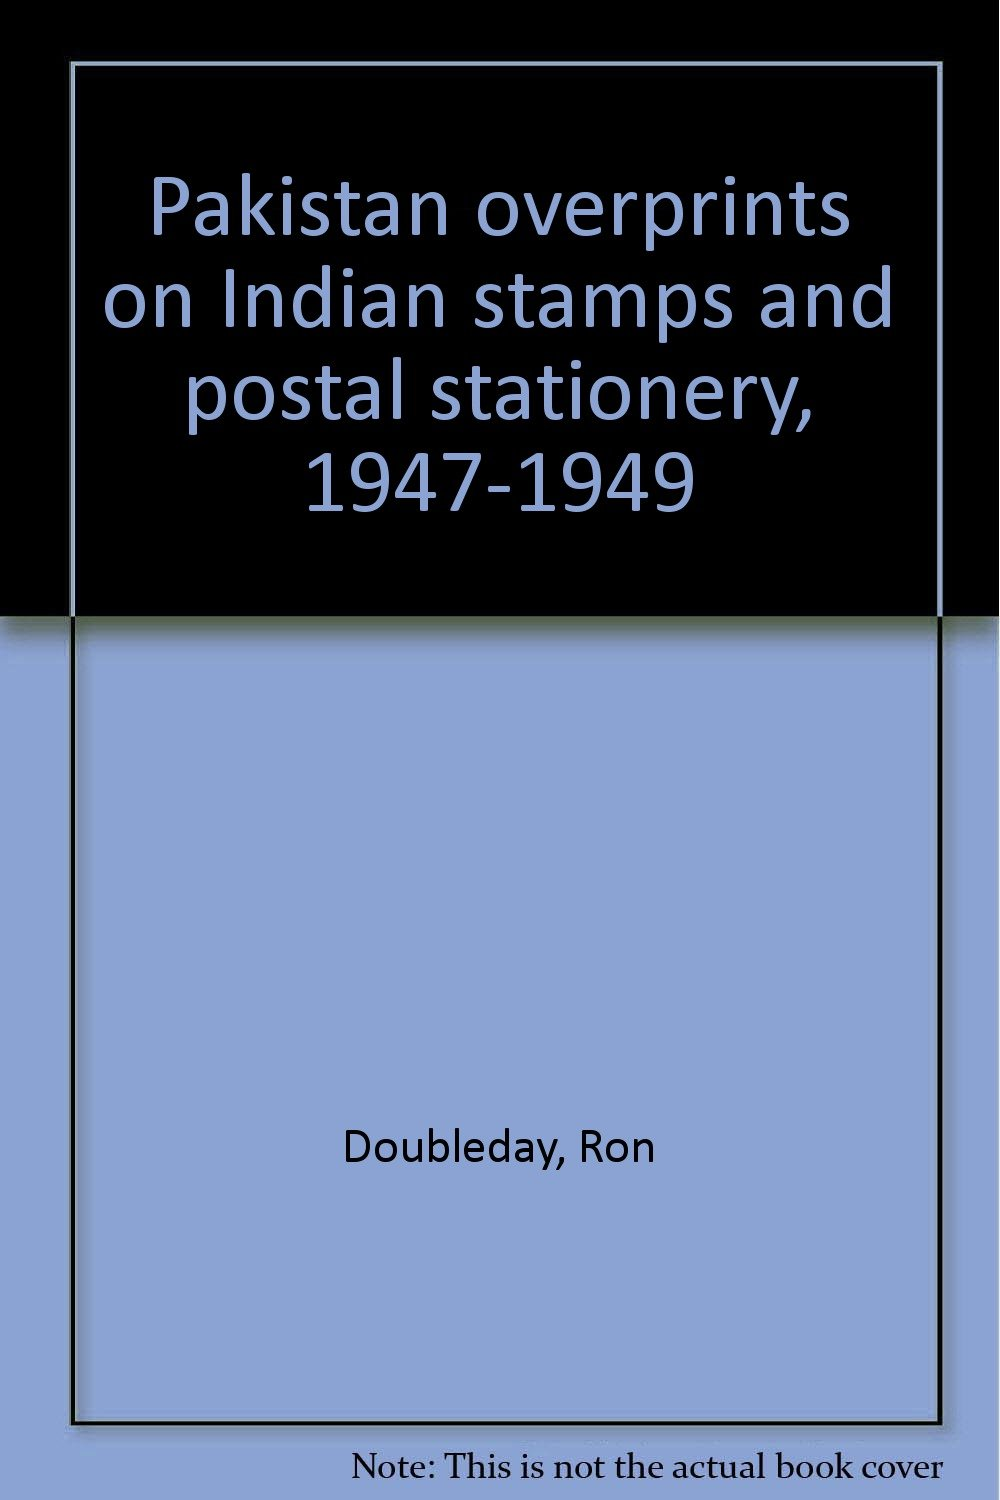 Pakistan overprints on Indian stamps and postal stationery ...